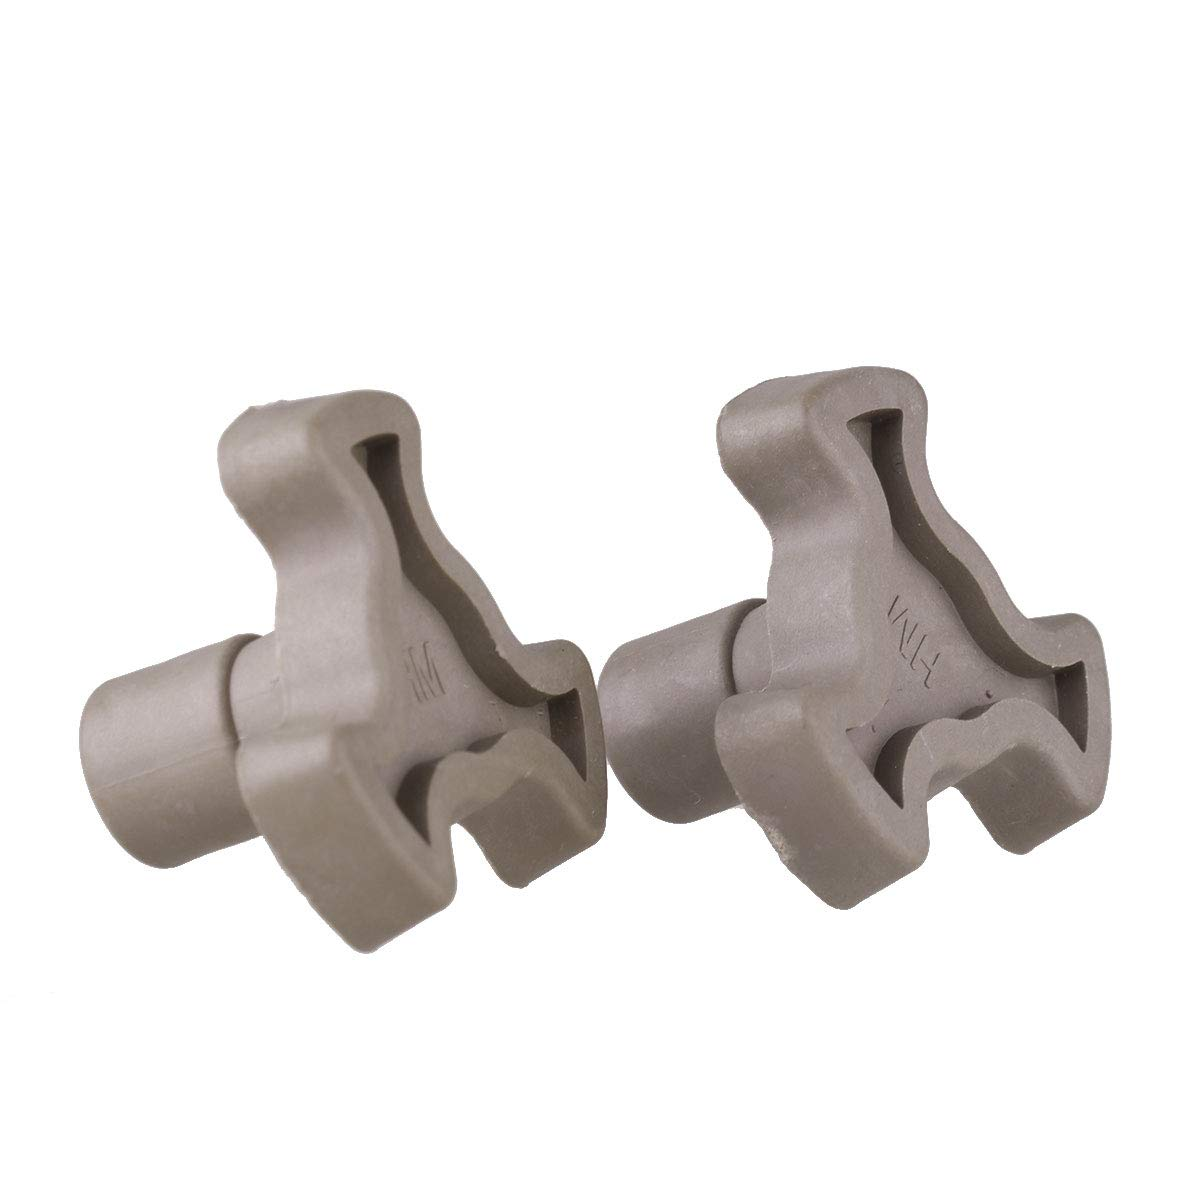 IEFIEL 2Pcs Microwave Oven Turntable Roller Support Coupler Tray Shaft Brown 1.7cm